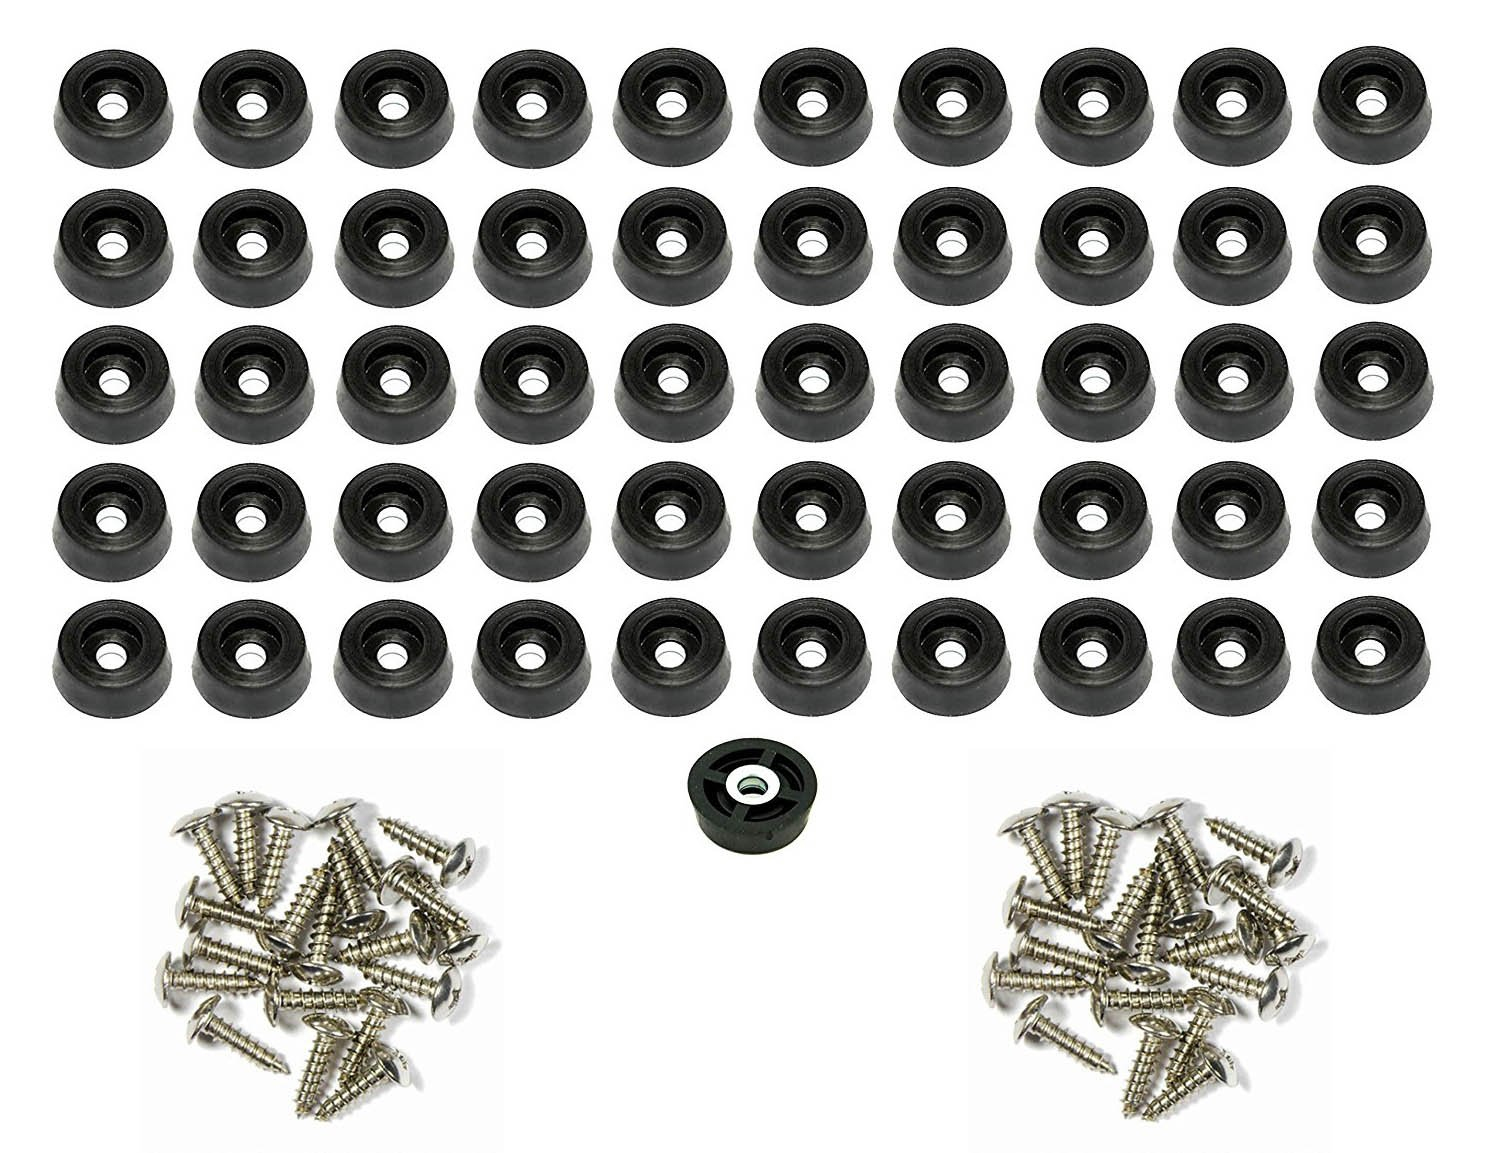 50 Small Round Rubber Feet W/ SCREWS - .250 H X .671 D - Made in USA /